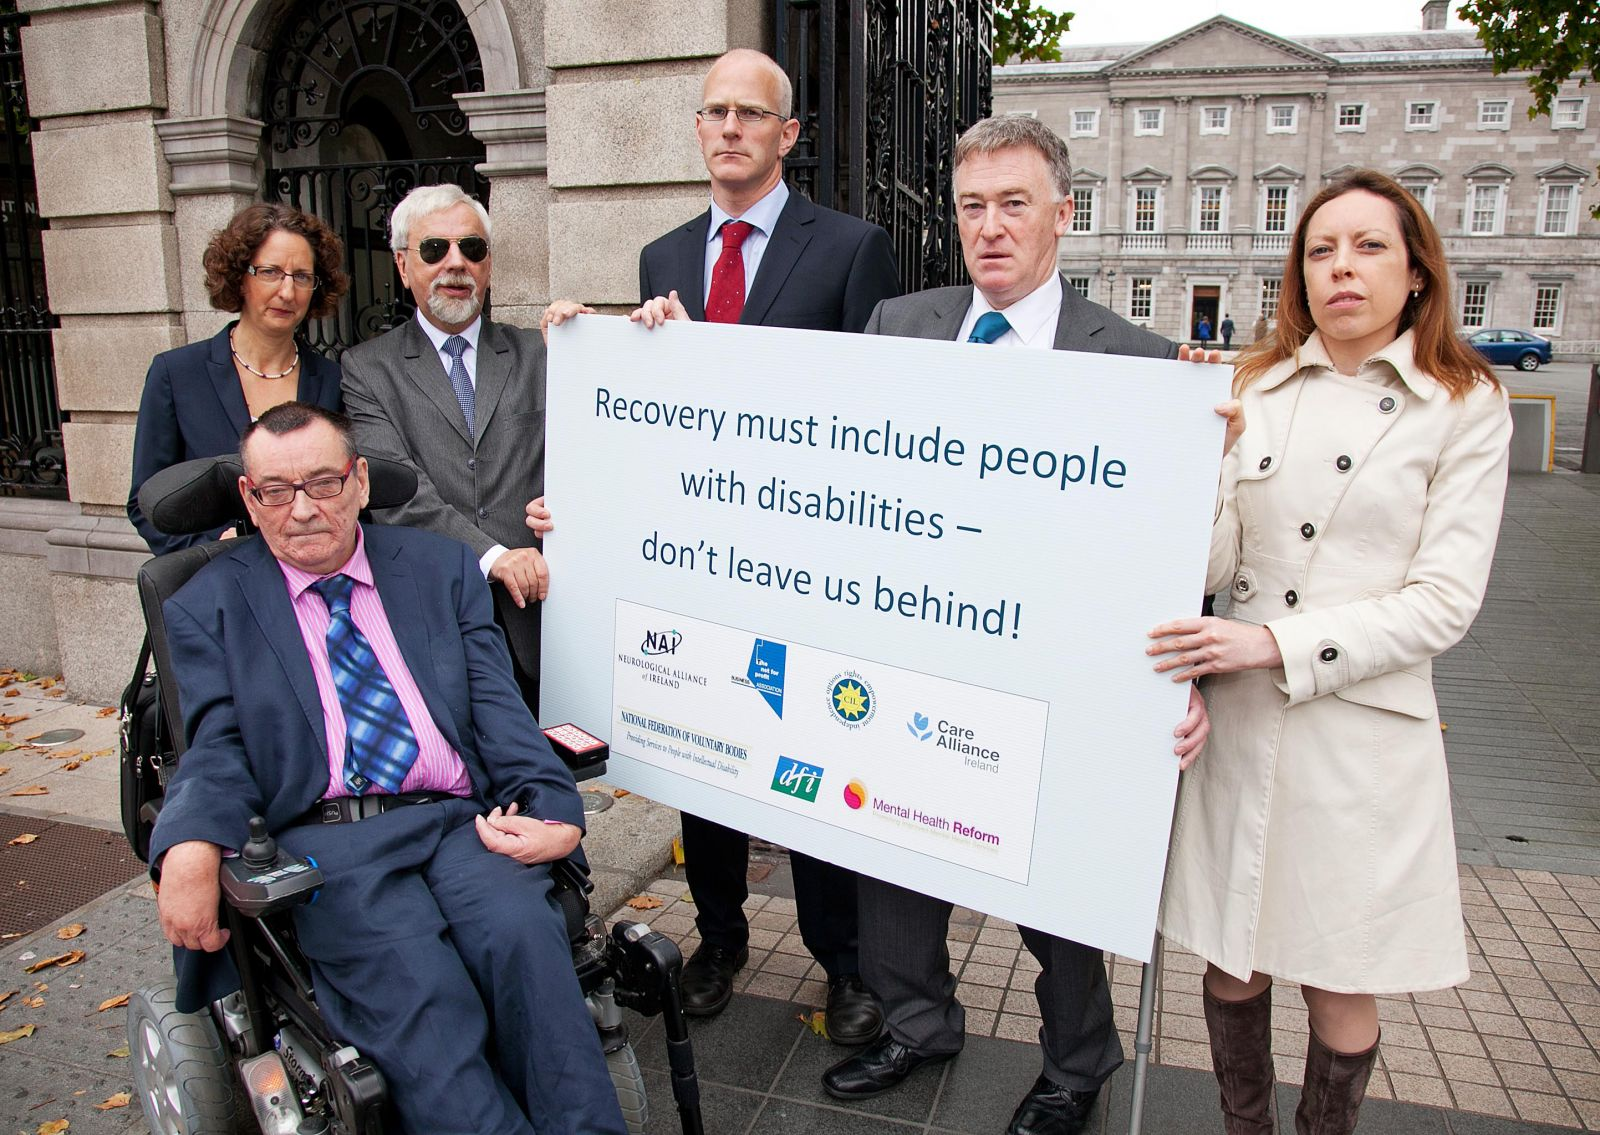 Budget 2014 – Time for Government to demonstrate its commitment to People with Disabilities and those with Mental Health Needs